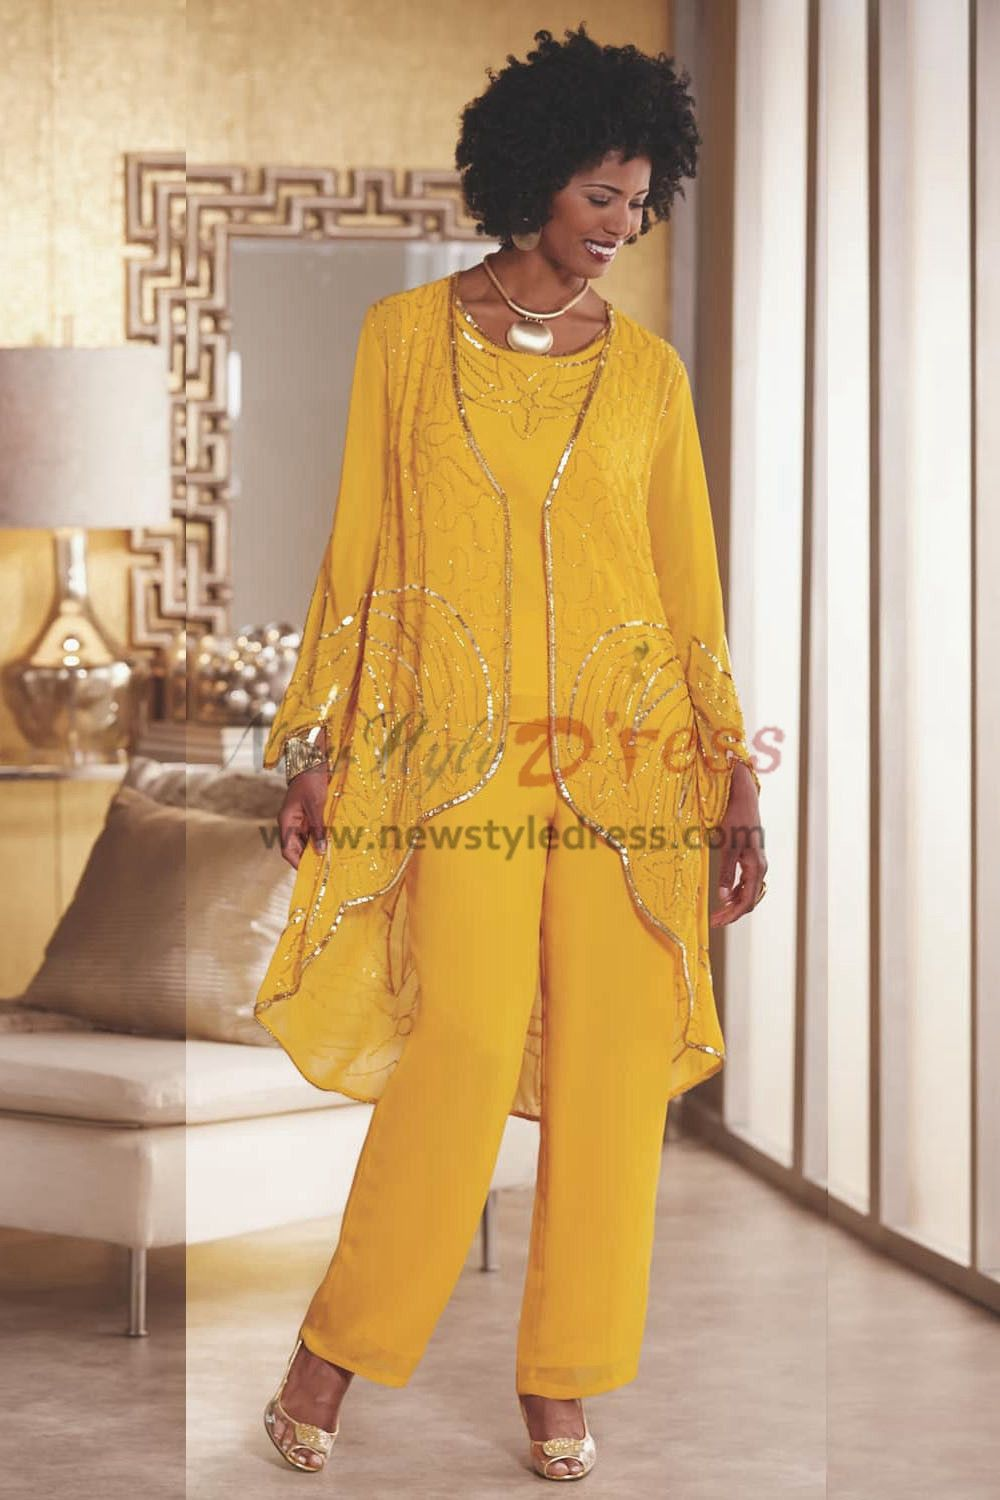 9d41ee38217dd Gold Yellow Beaded Trousers outfit Mother of the bride pant suit Wear  nmo-432